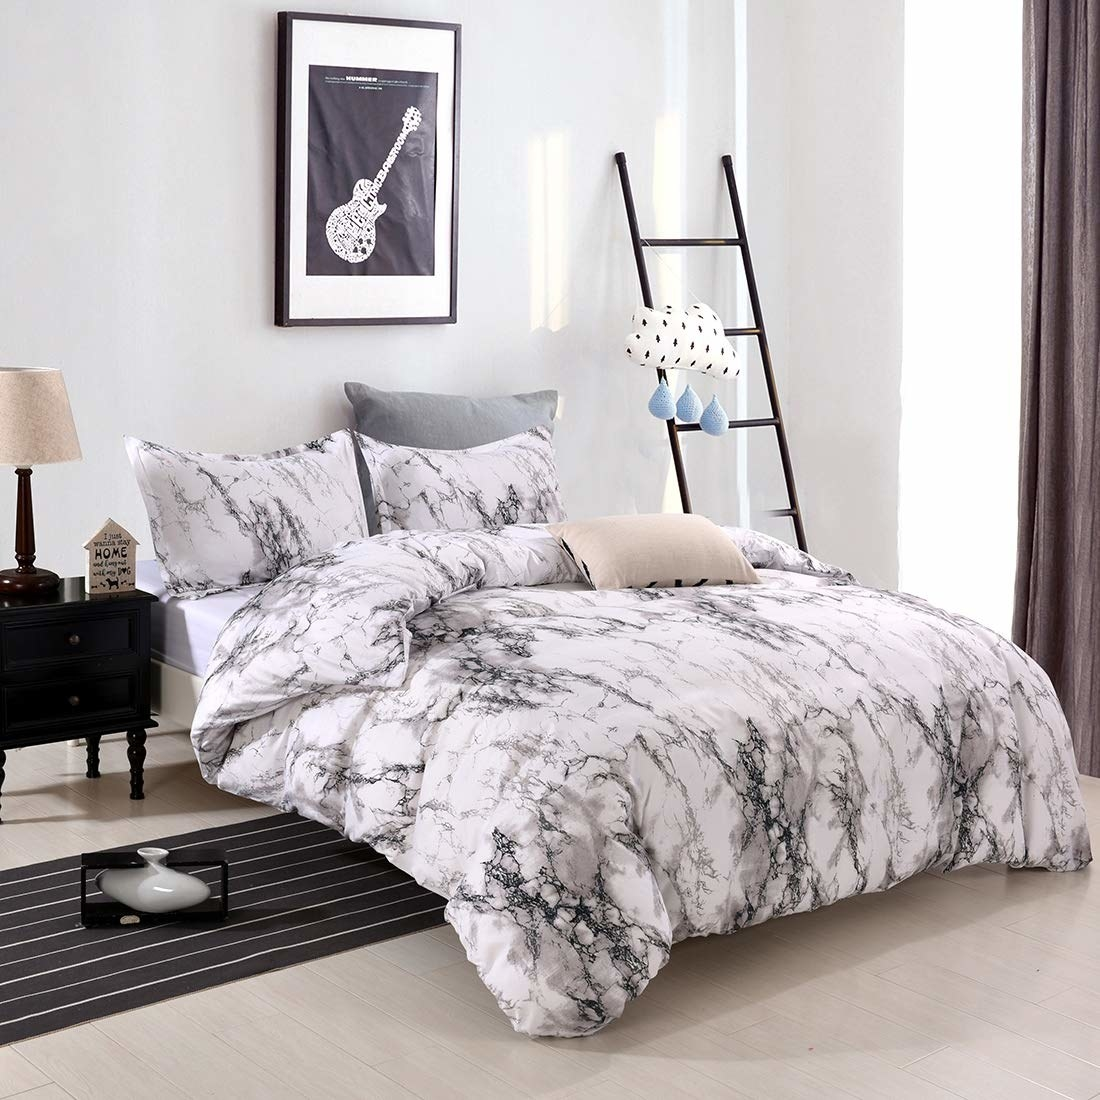 A thick duvet on a bed with tons of pillows